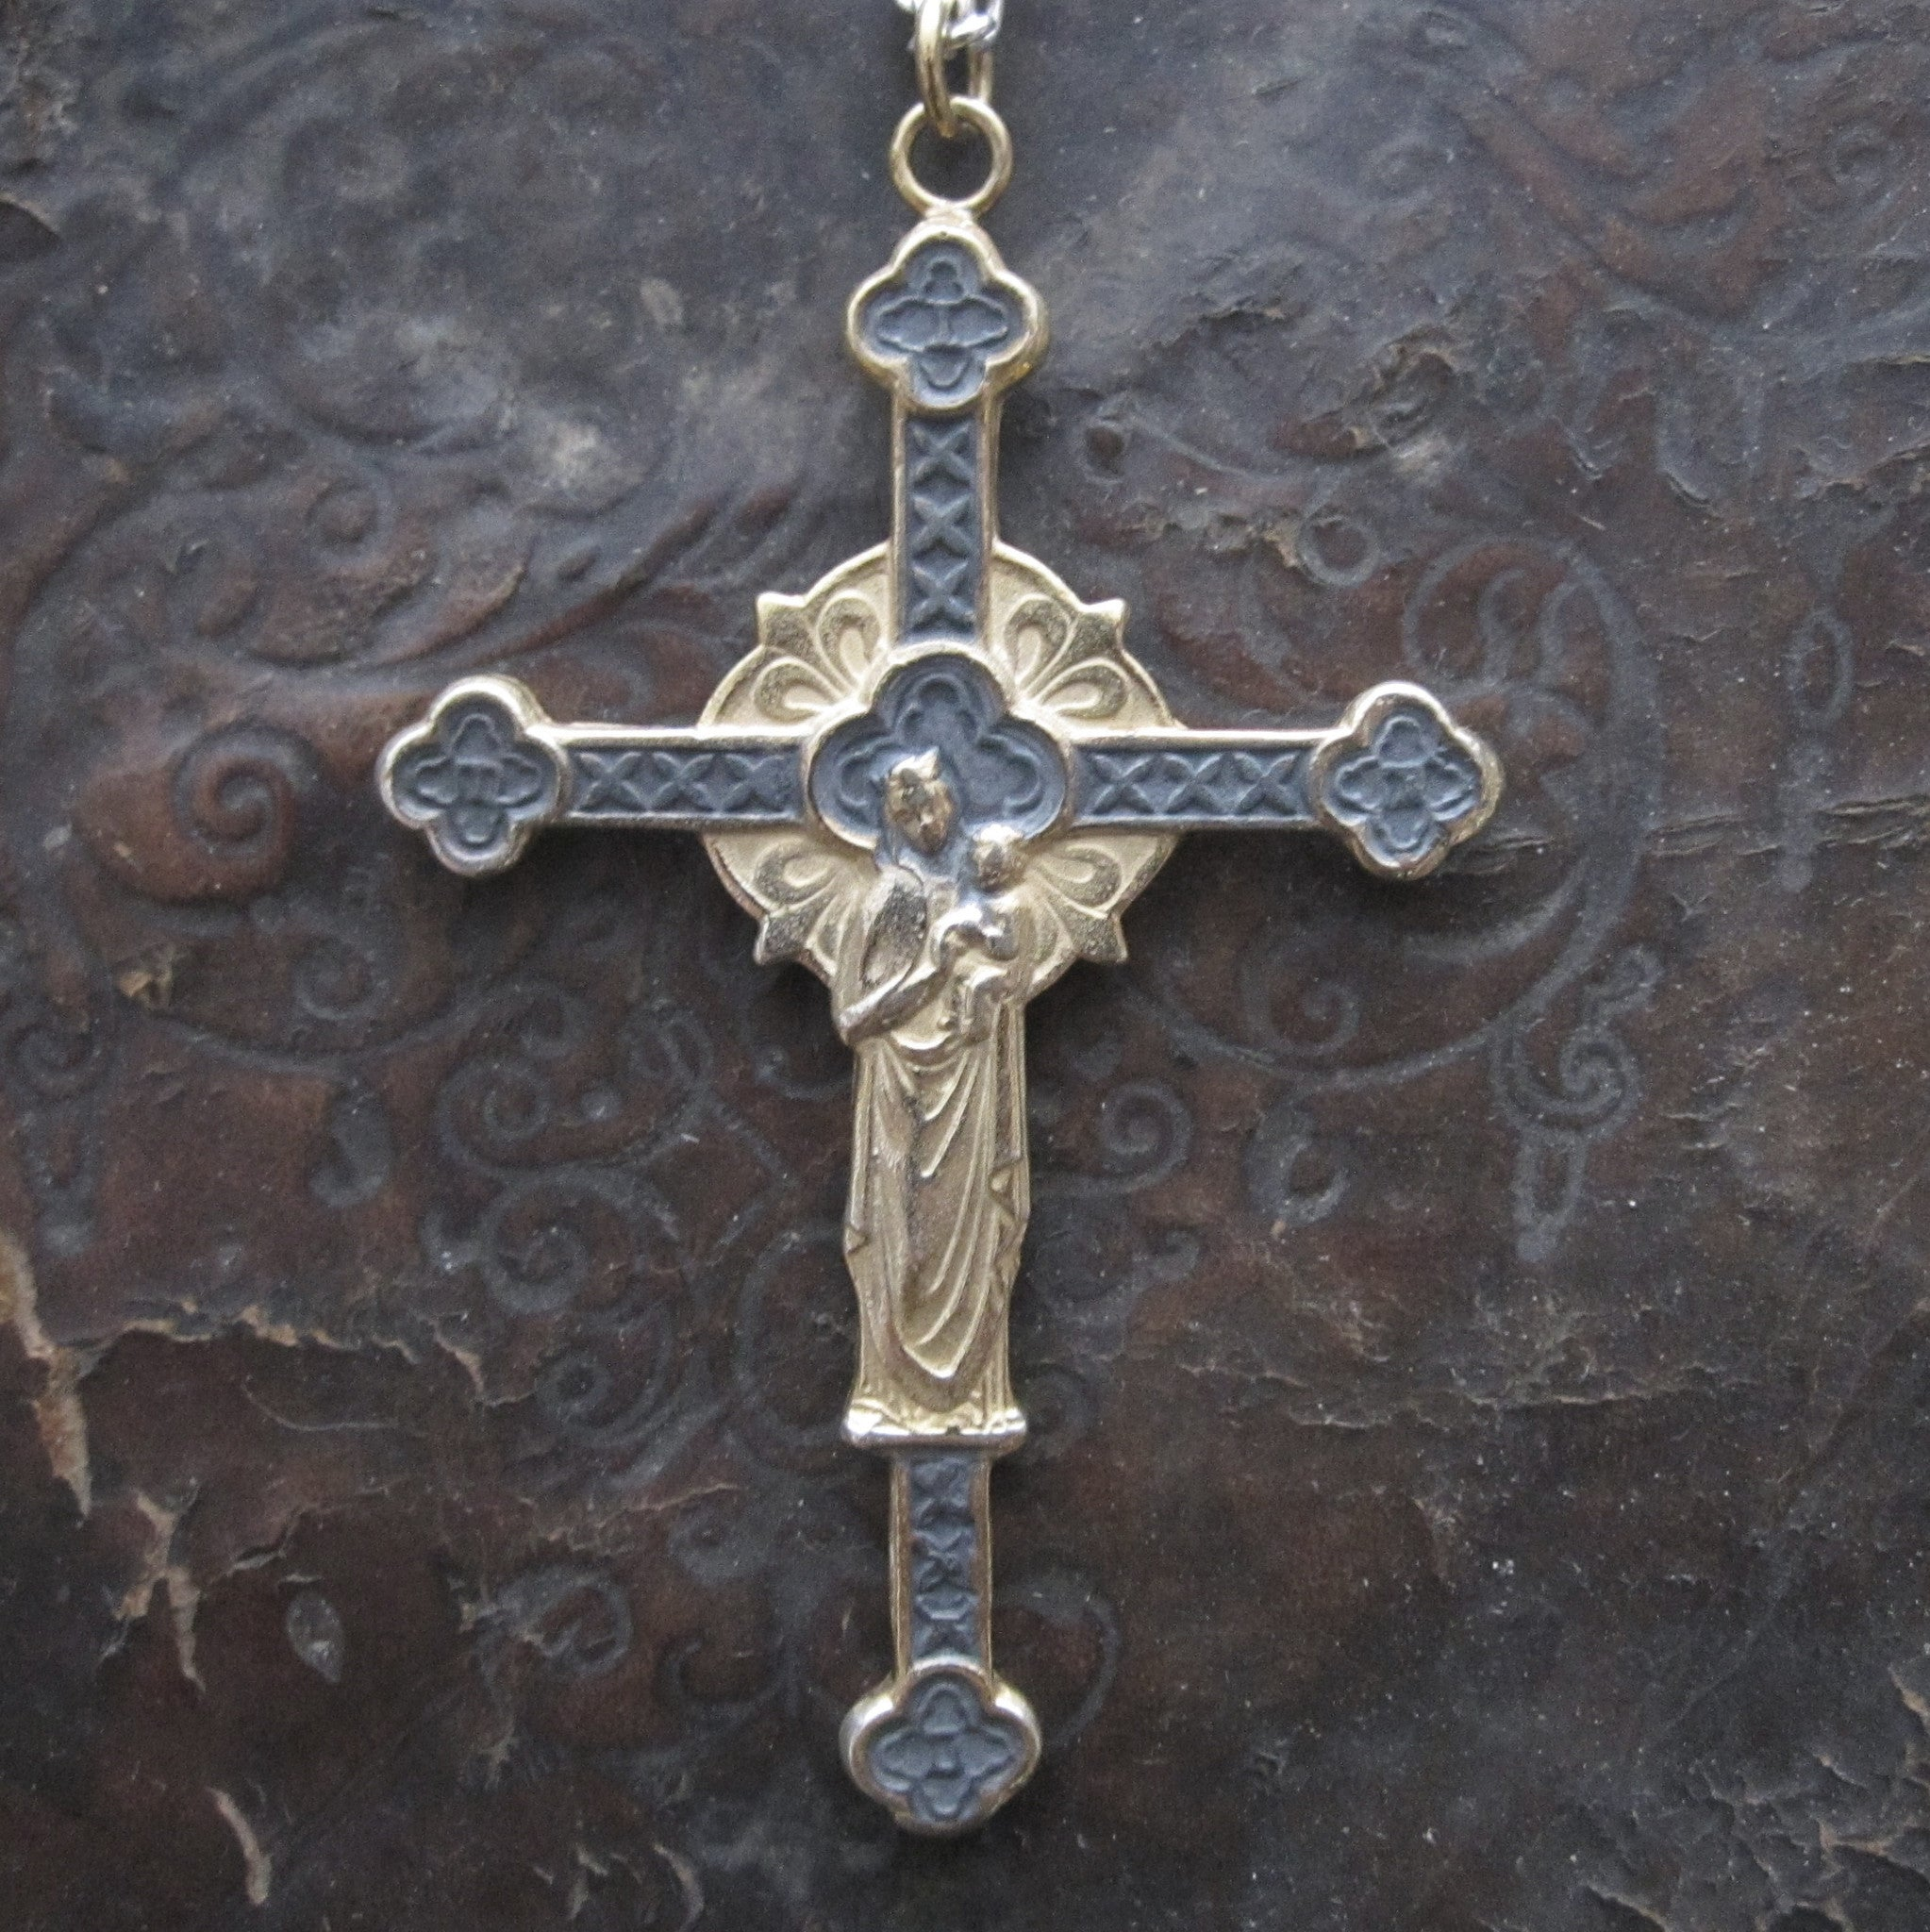 WDTS Sheffield Silver - Bilateral Cross - Oxidised & Gold Finish